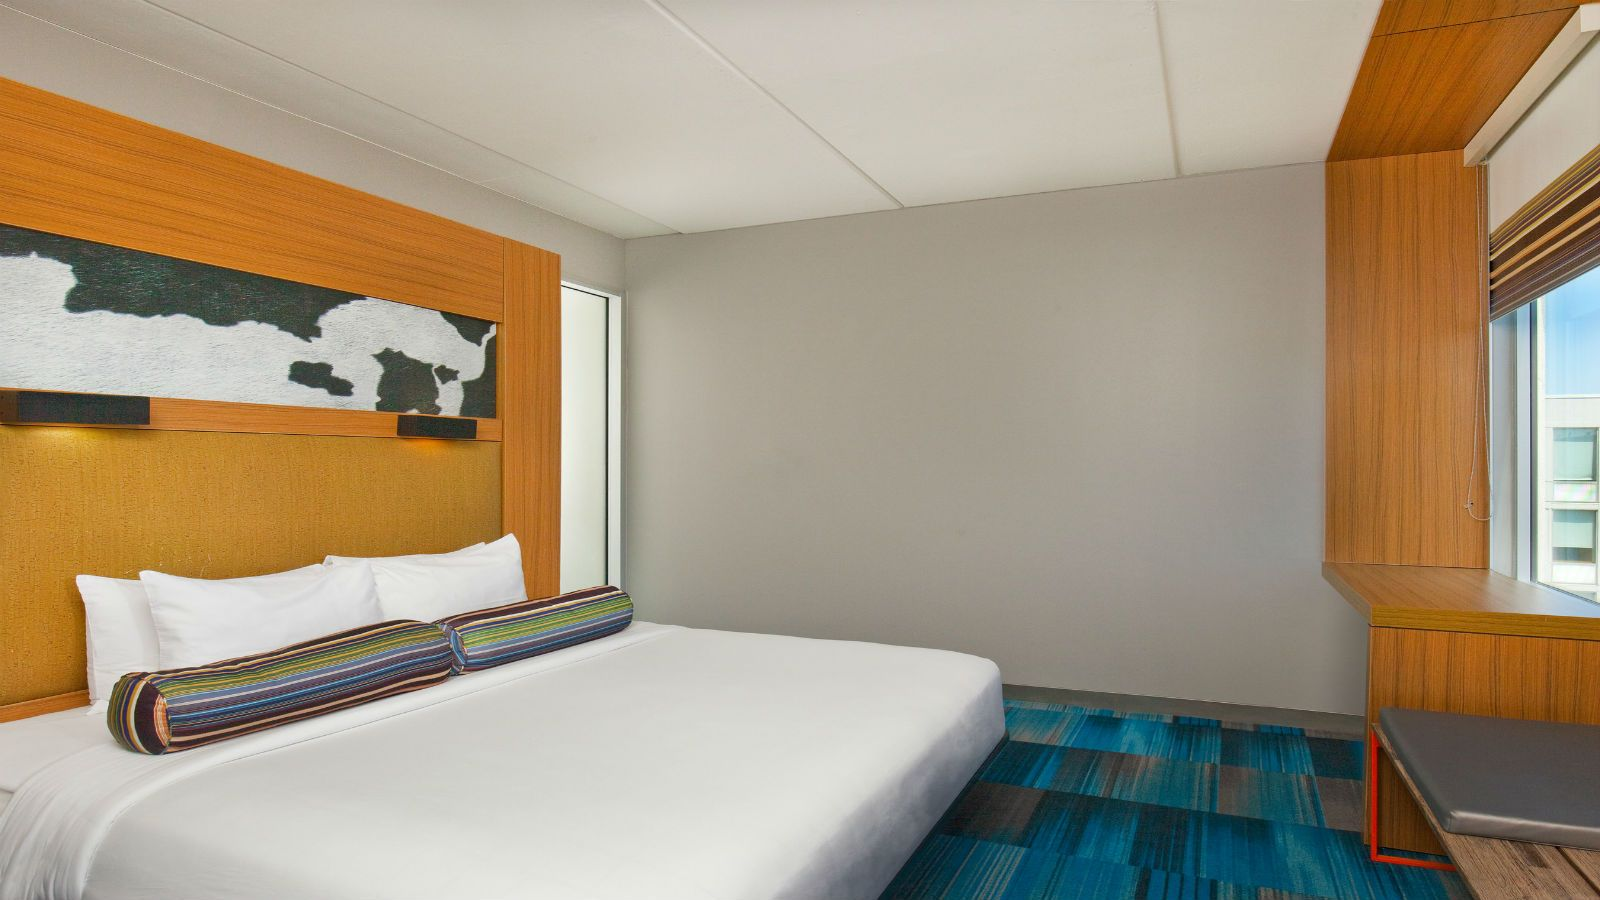 Bolingbrook Accommodations - Aloft King Room